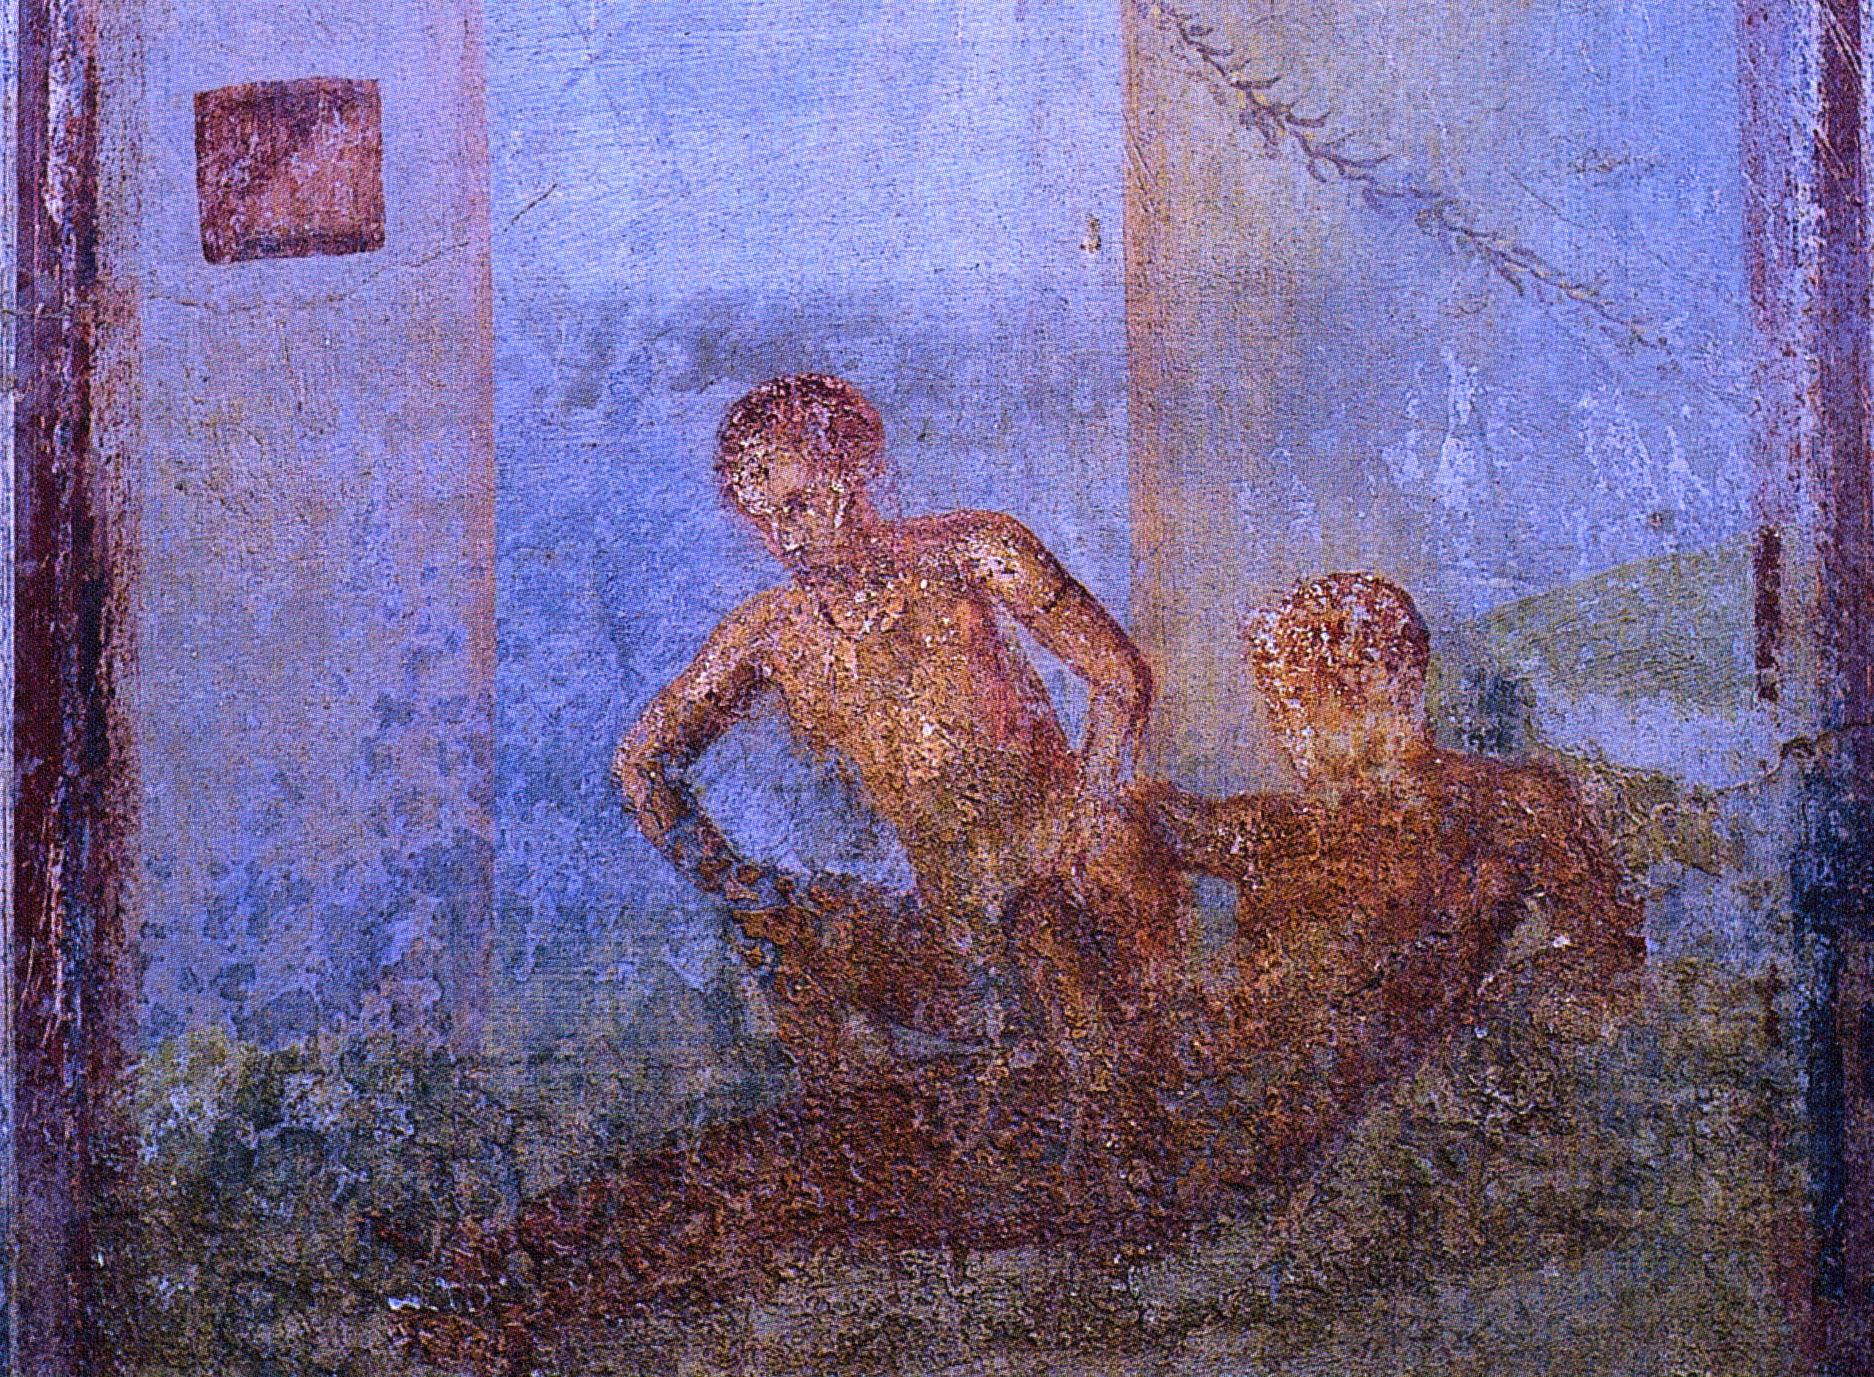 Pompeii, The Two Maidens, And Thousands Of Years Of Precarious Masculinity